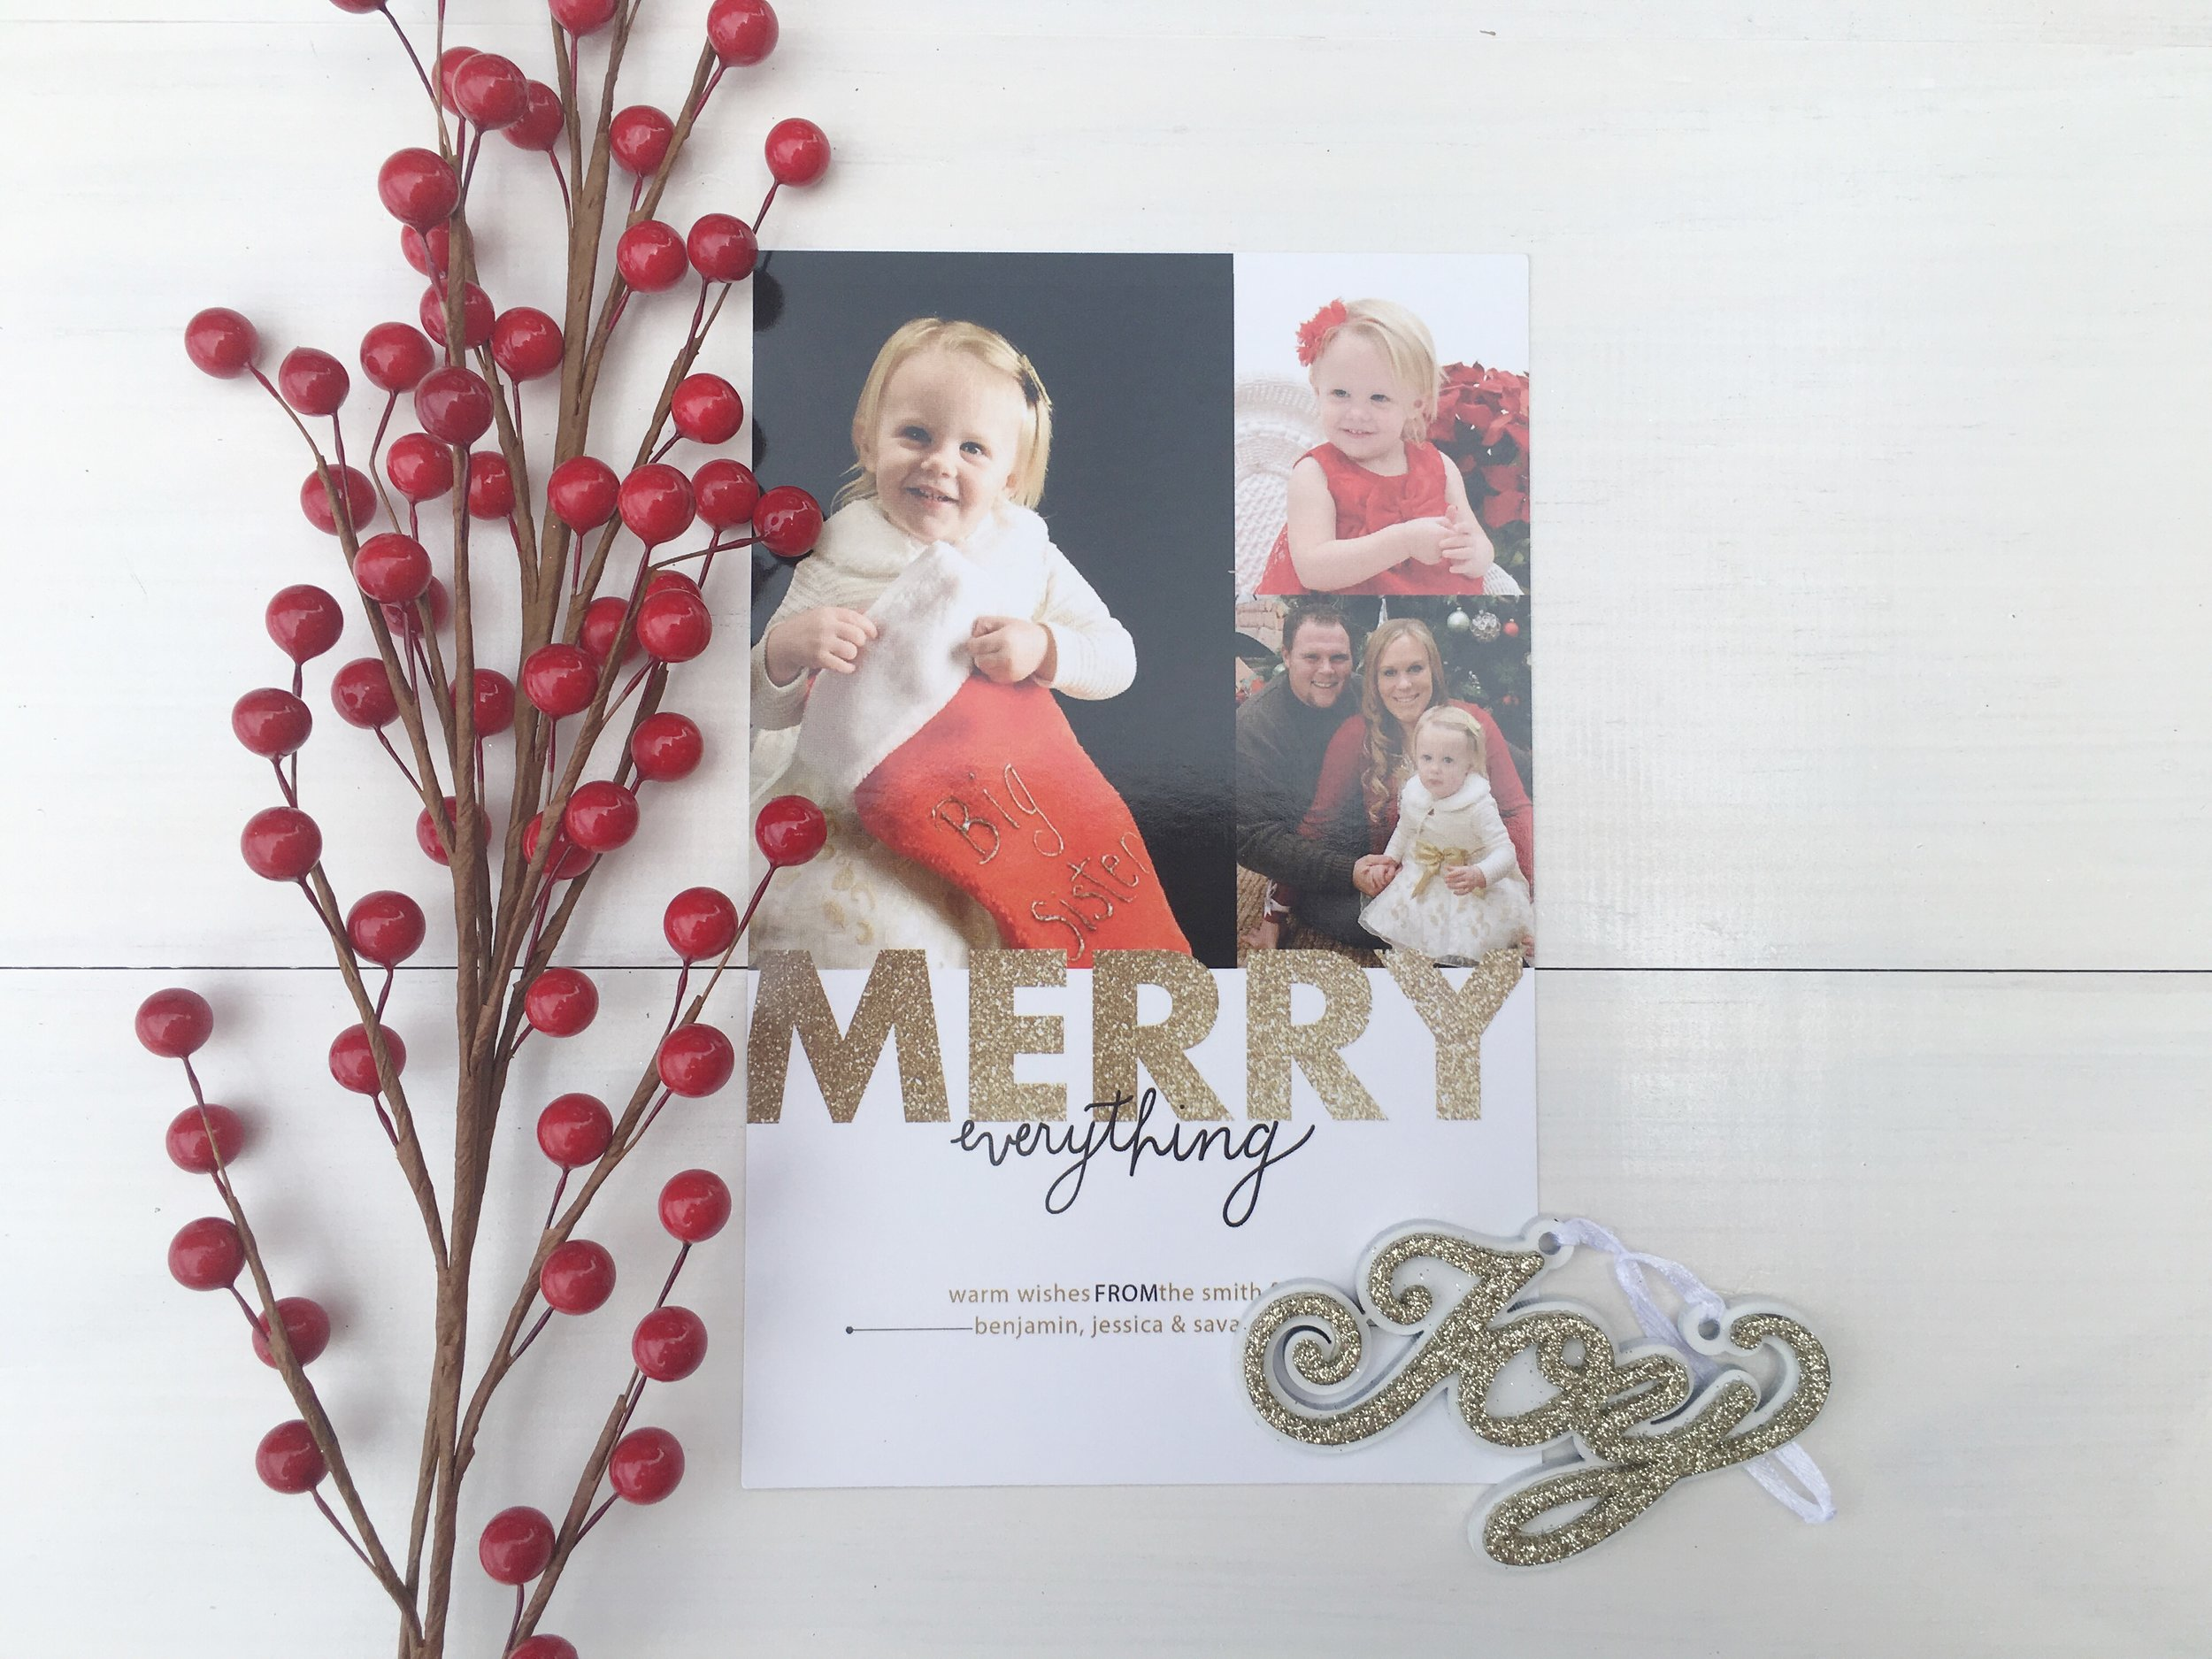 jsd merry christmas gold glitter holiday card.jpg